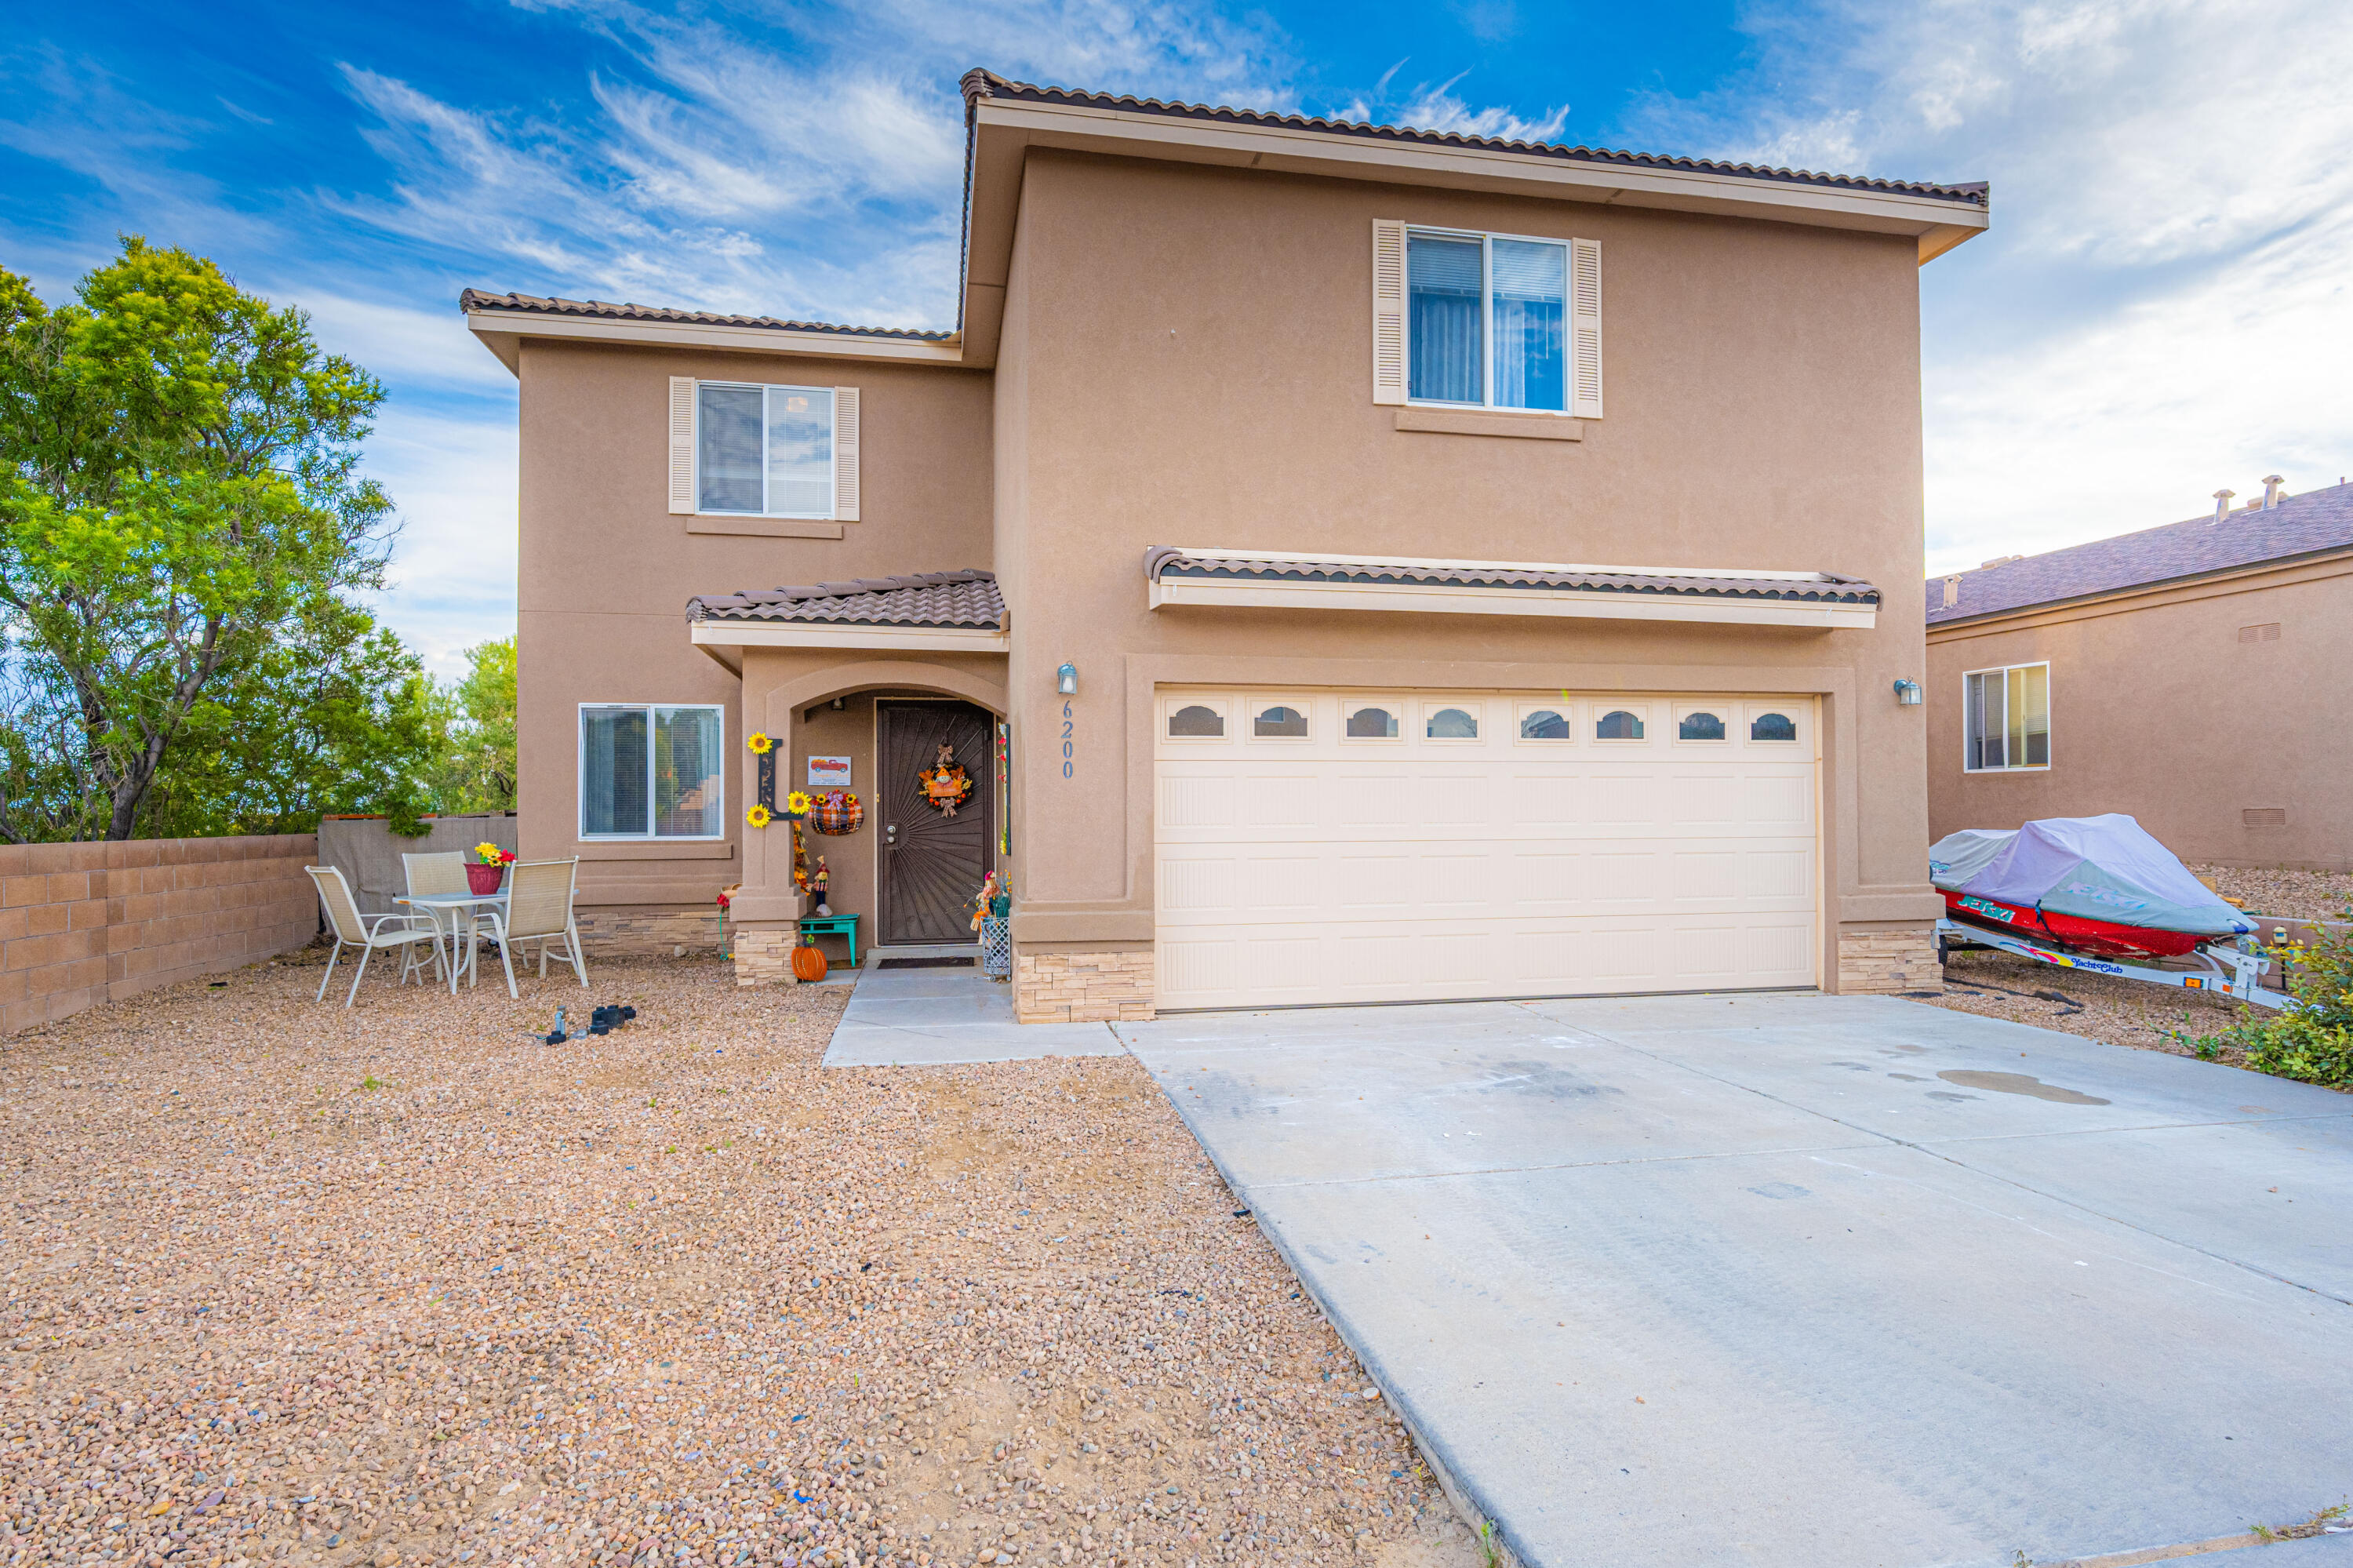 Views Views Views beautiful corner lot with lots of parking space. Come see this gorgeous home with space for the whole family.